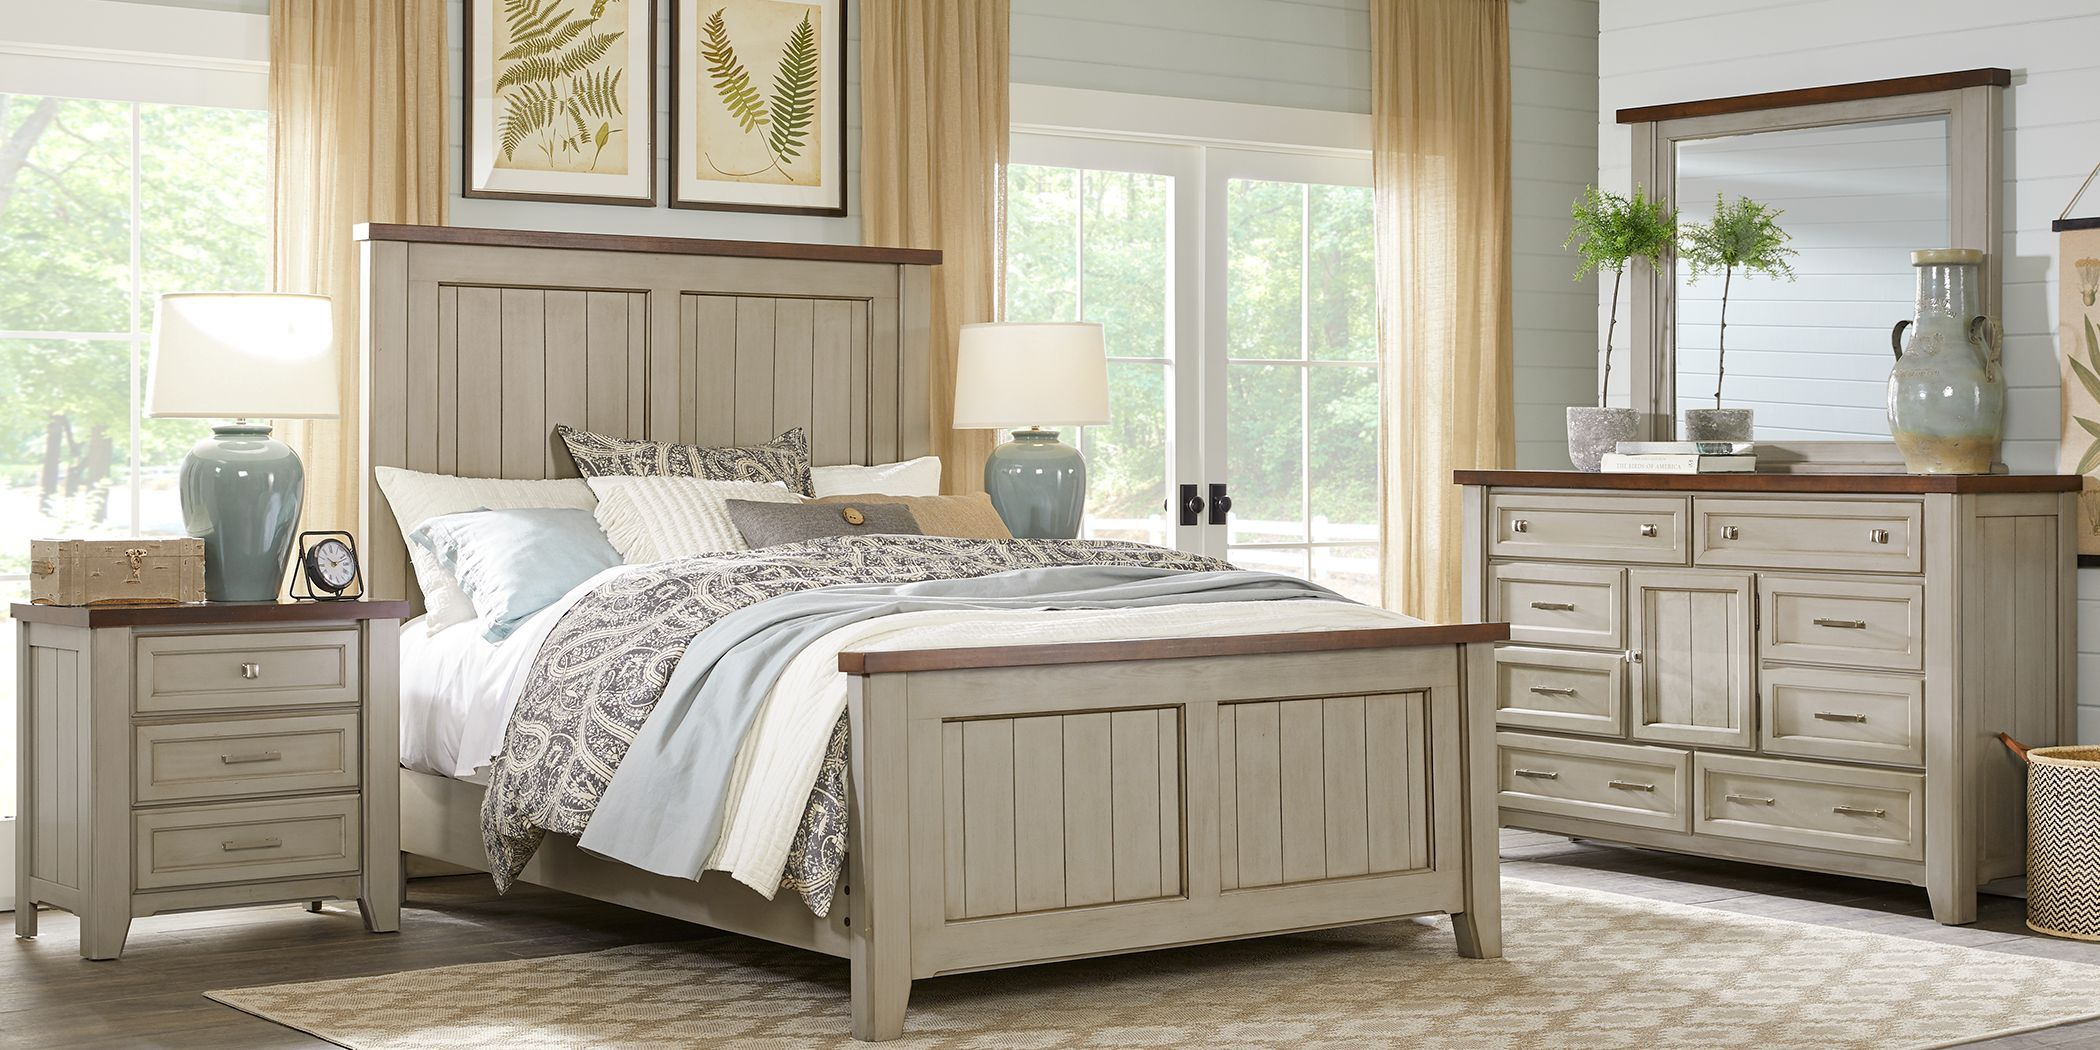 Country Grove Gray 7 Pc King Panel Bedroom | Bedroom furniture sets, Bedroom furniture for sale, Bedroom panel